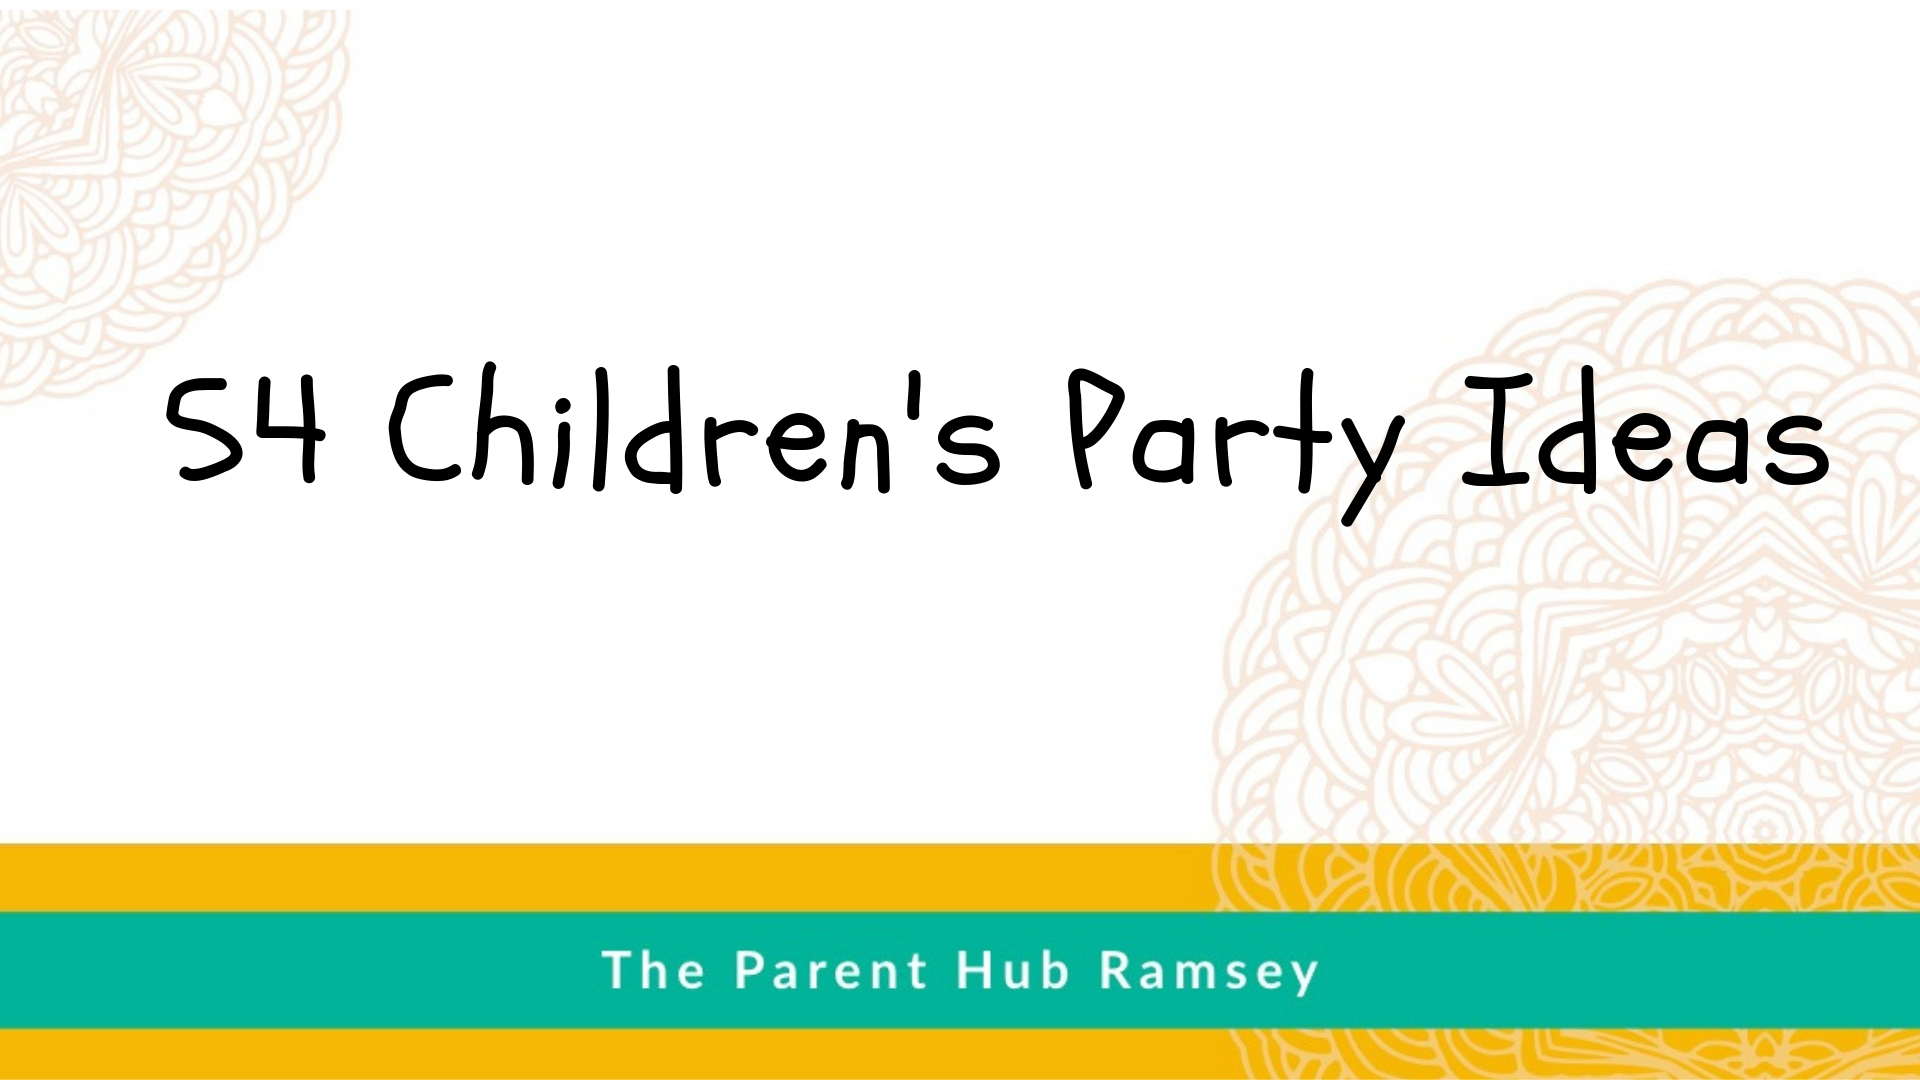 54 Children's Party Ideas